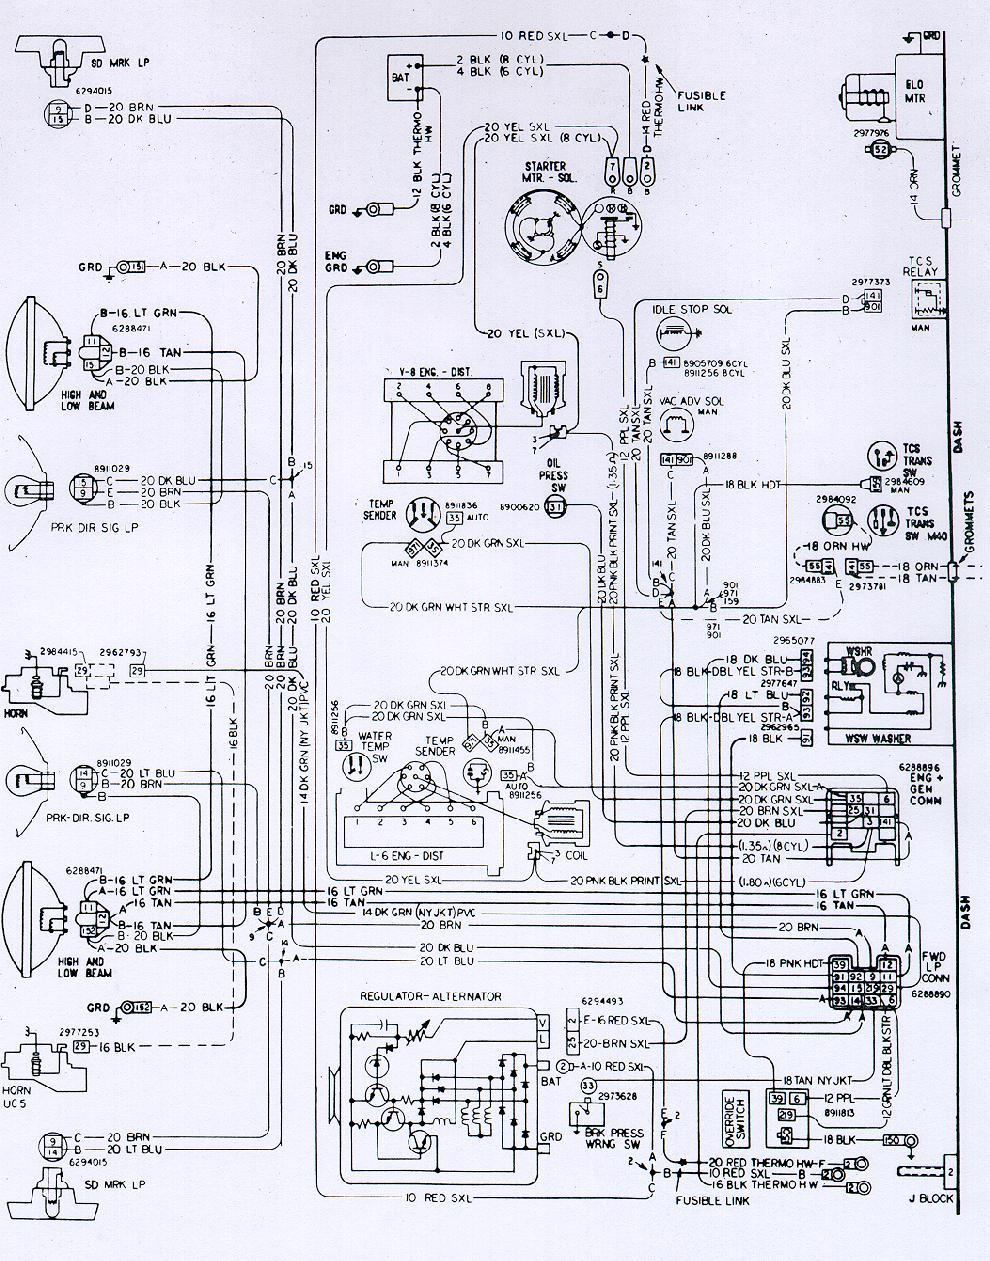 hight resolution of air conditioning wiring diagram 1964 nova smart wiring diagrams u2022 rh emgsolutions co chevy tail light